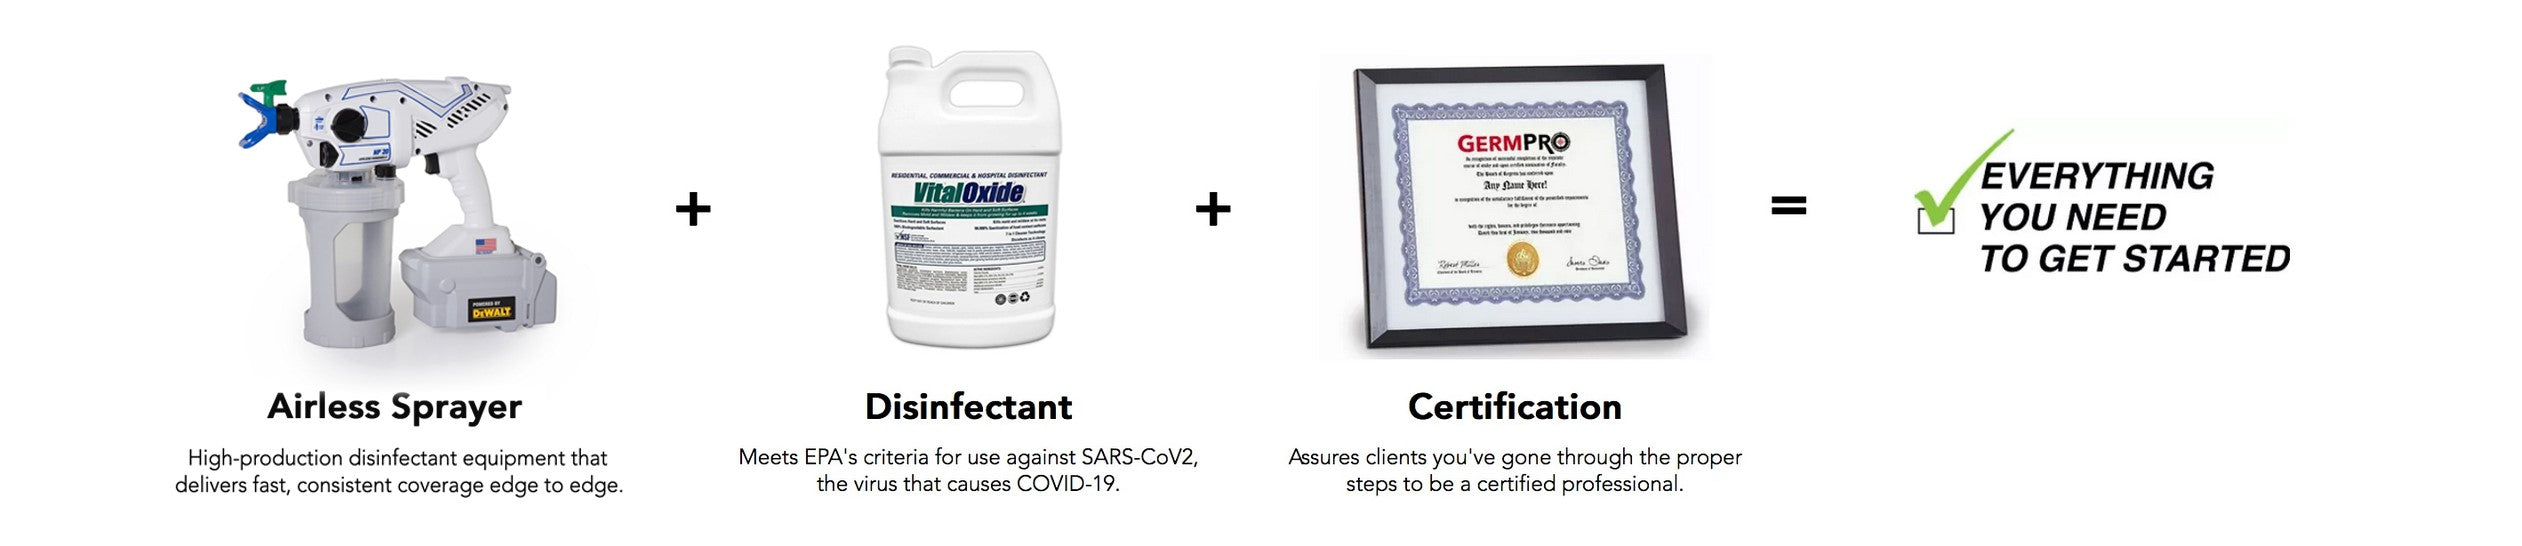 GermPro's complete disinfection kit has everything you need to get started